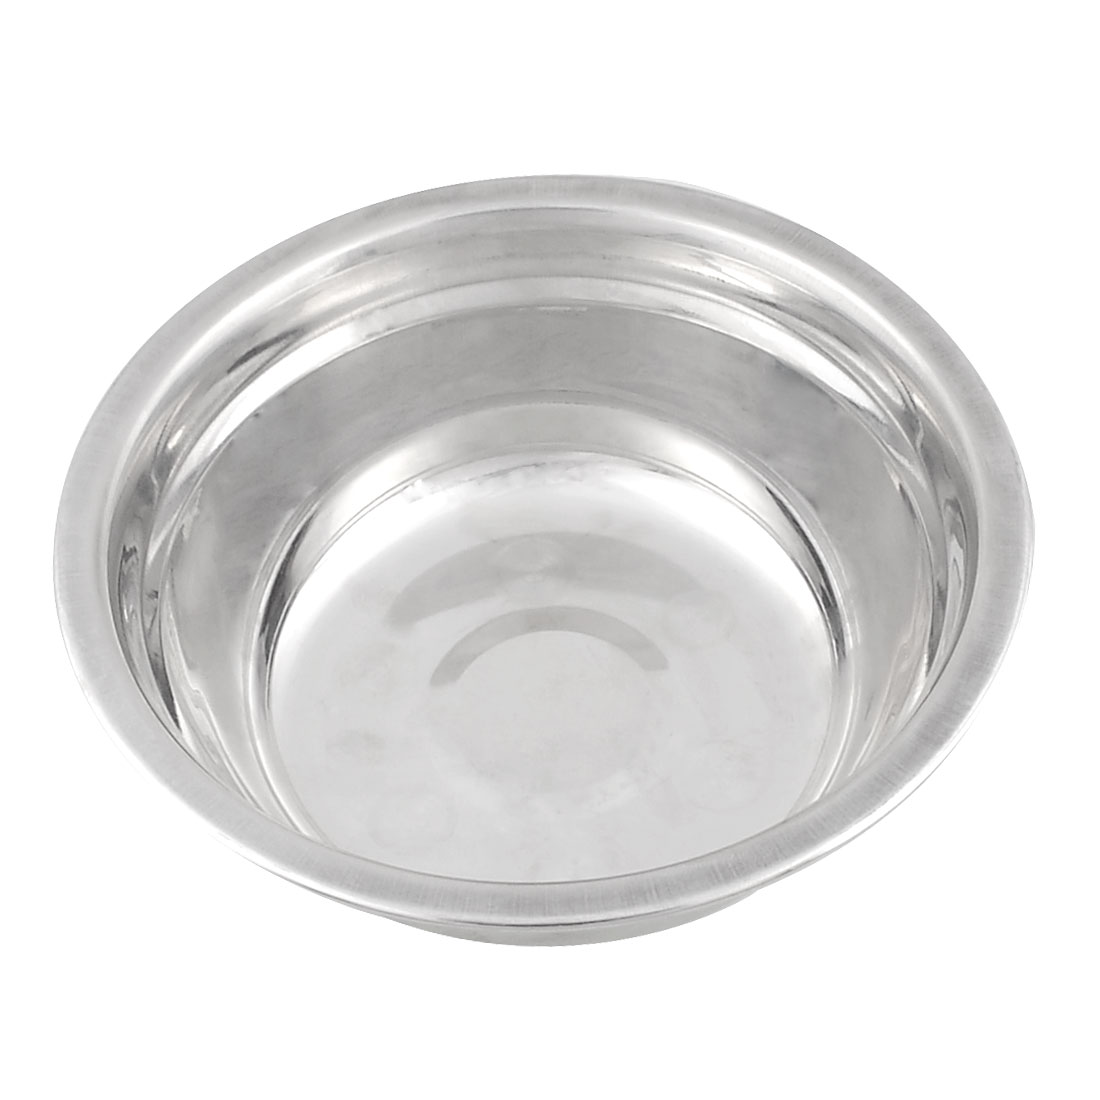 Kitchen Silver Tone 14cm Diameter Dinner Soup Rice Bowl